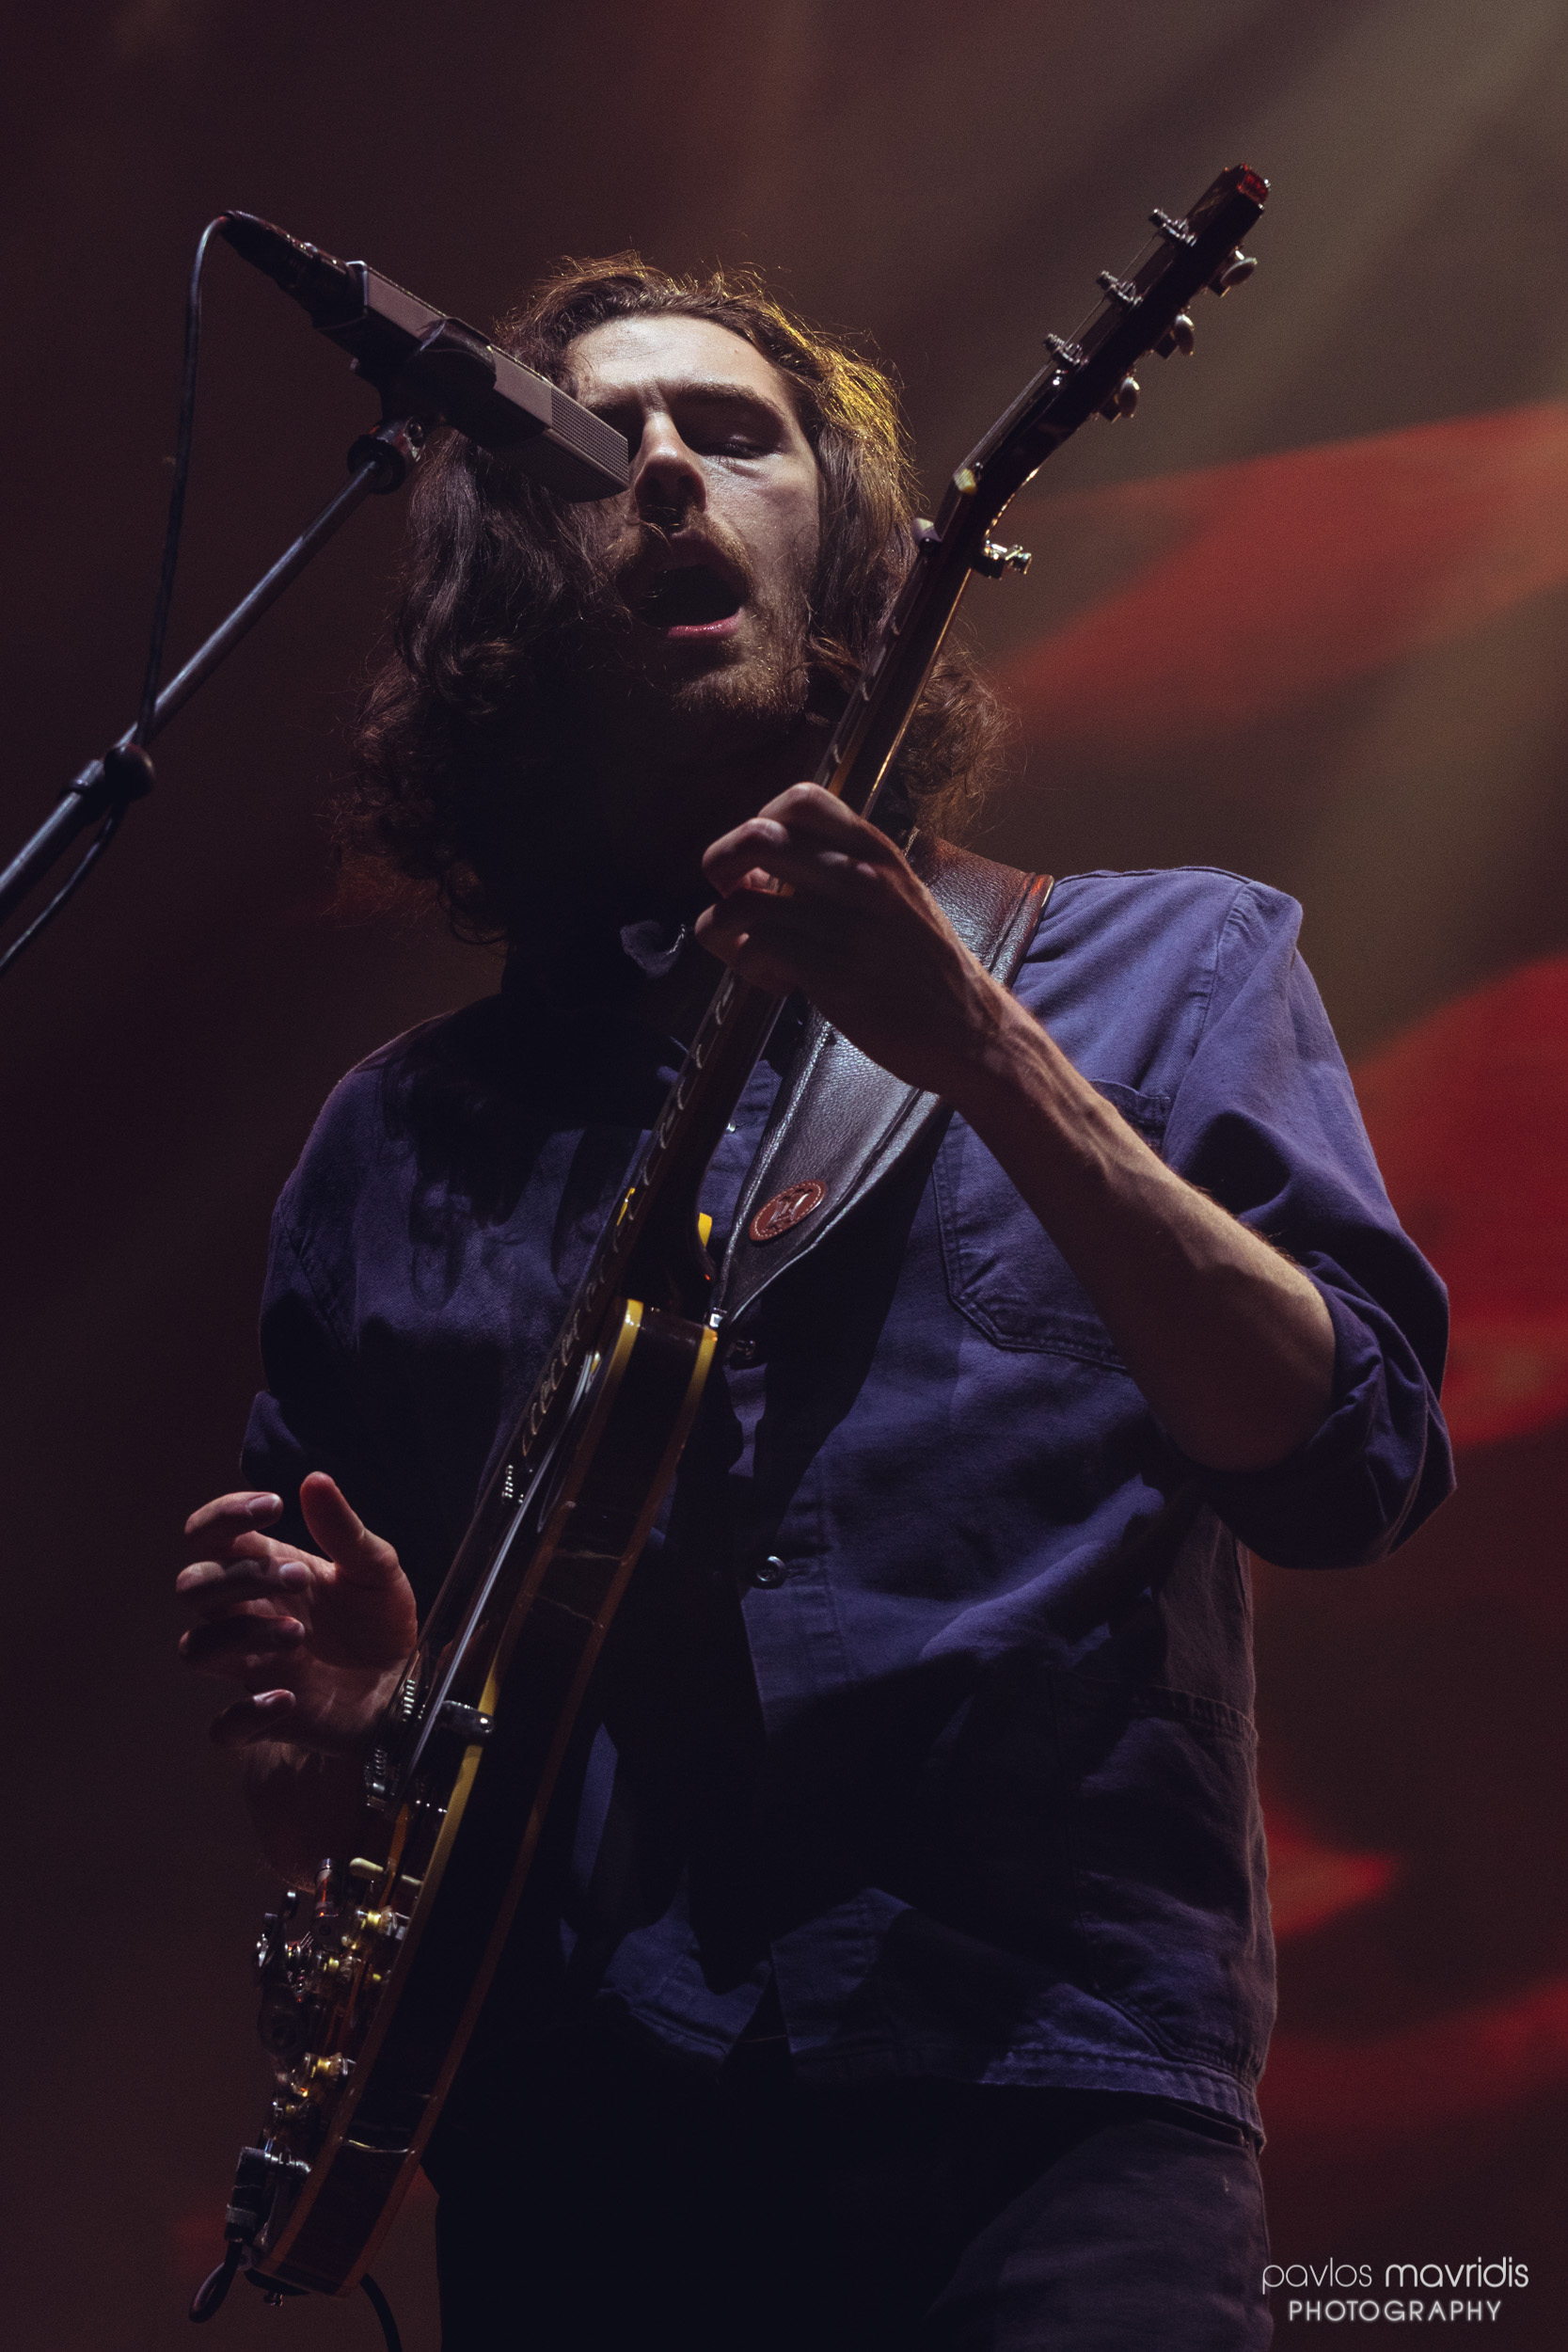 Hozier_Release Athens 2019_02_hires_web.jpg